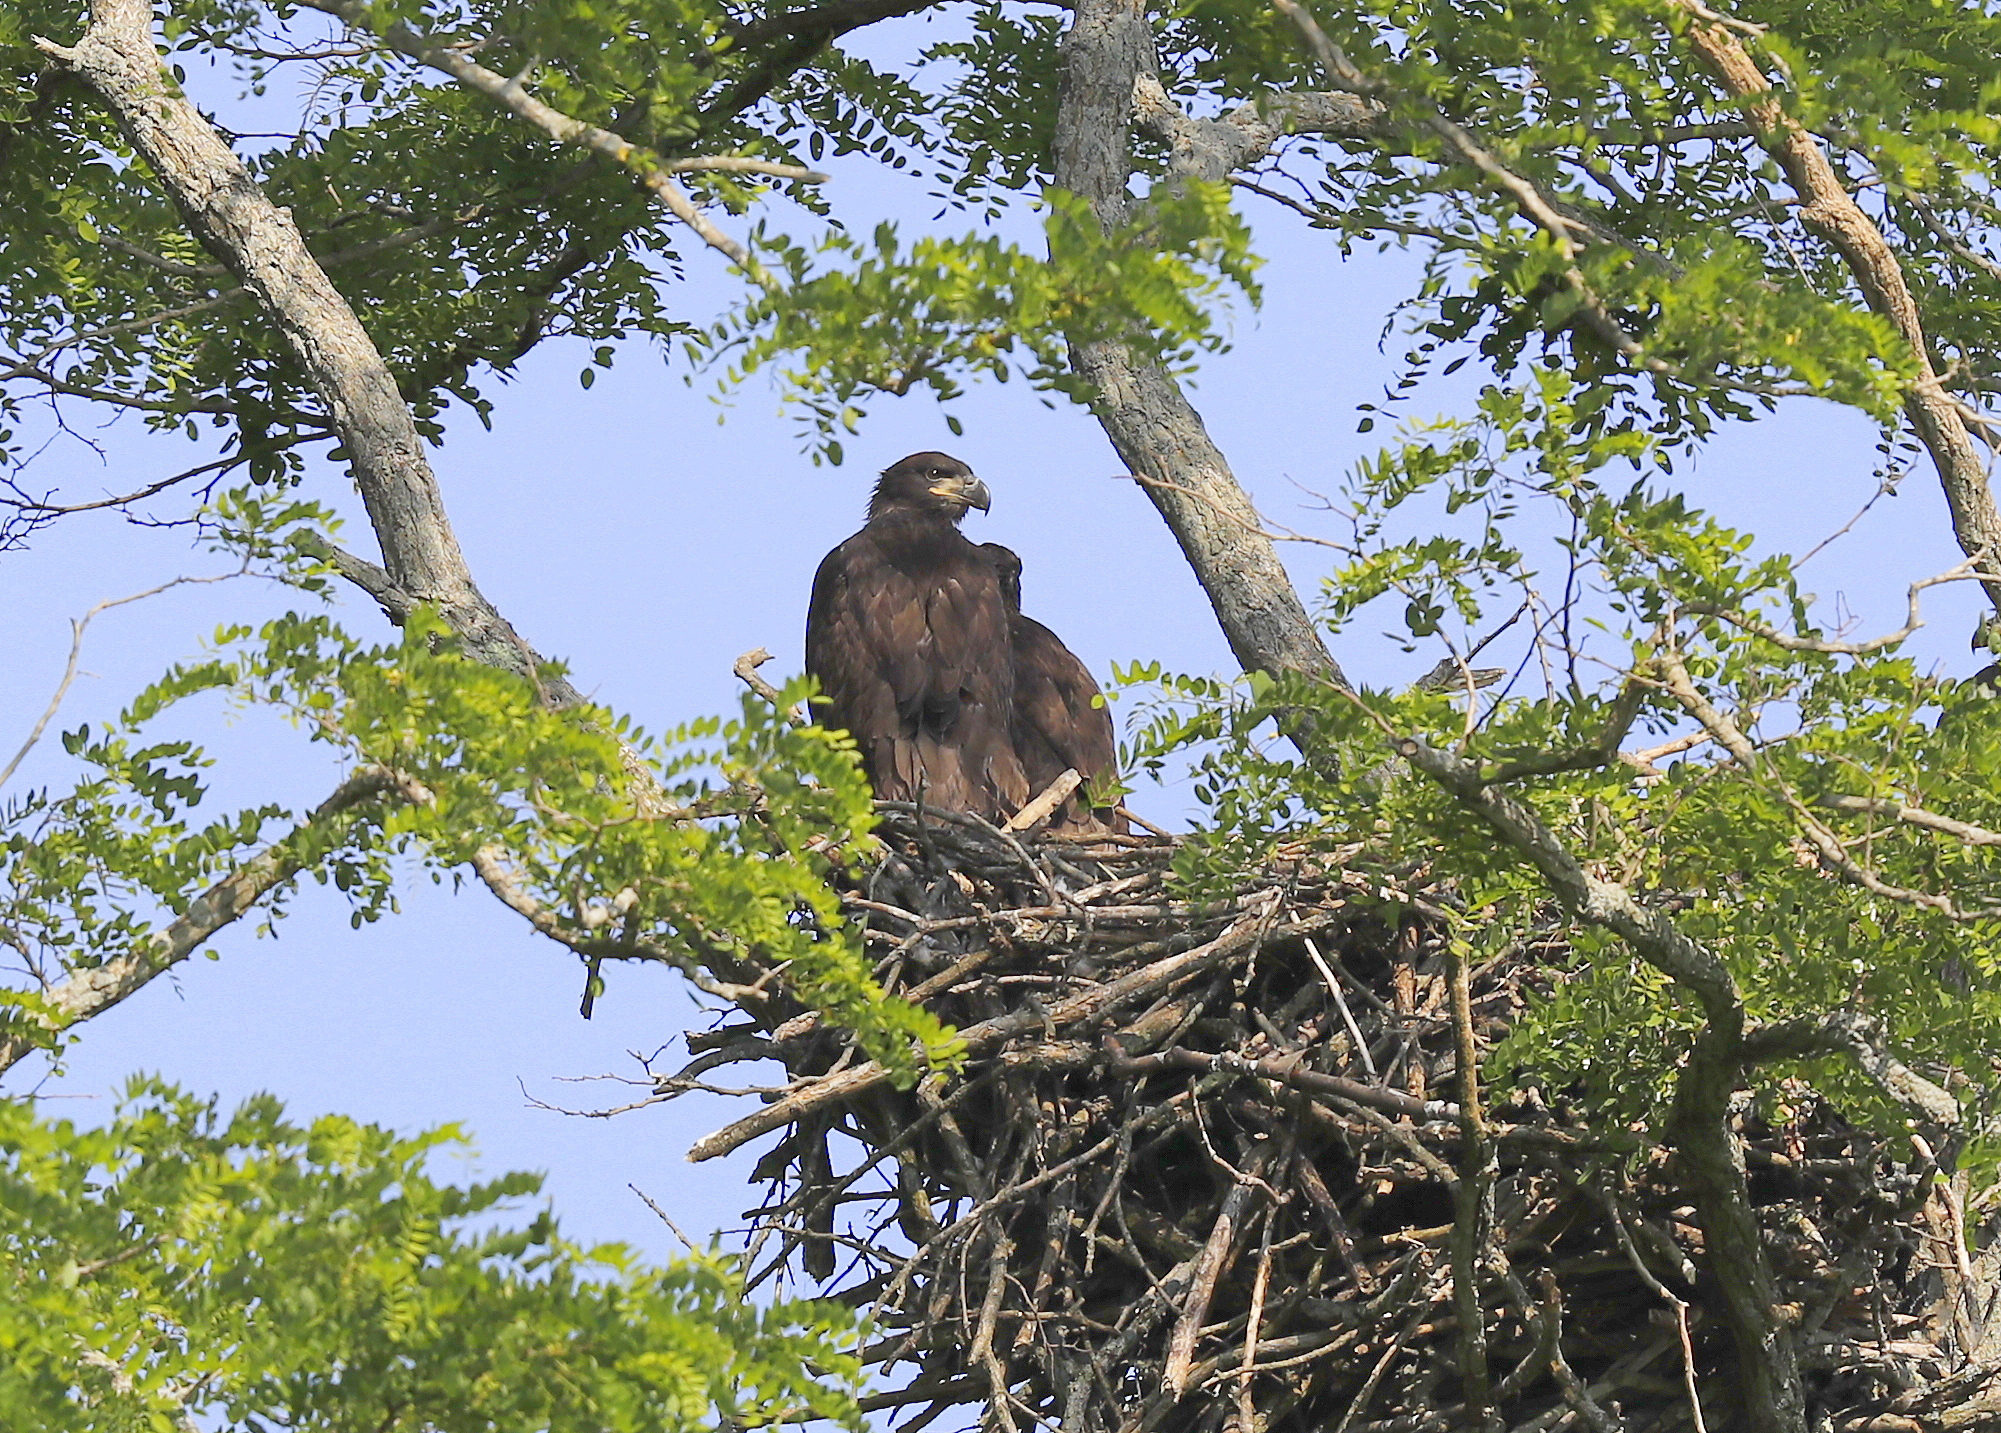 The 3 Bald Eagle chicks continue to grow in size and shape. Adults will  feed their chicks directly until the eaglets are five to six weeks old, ...